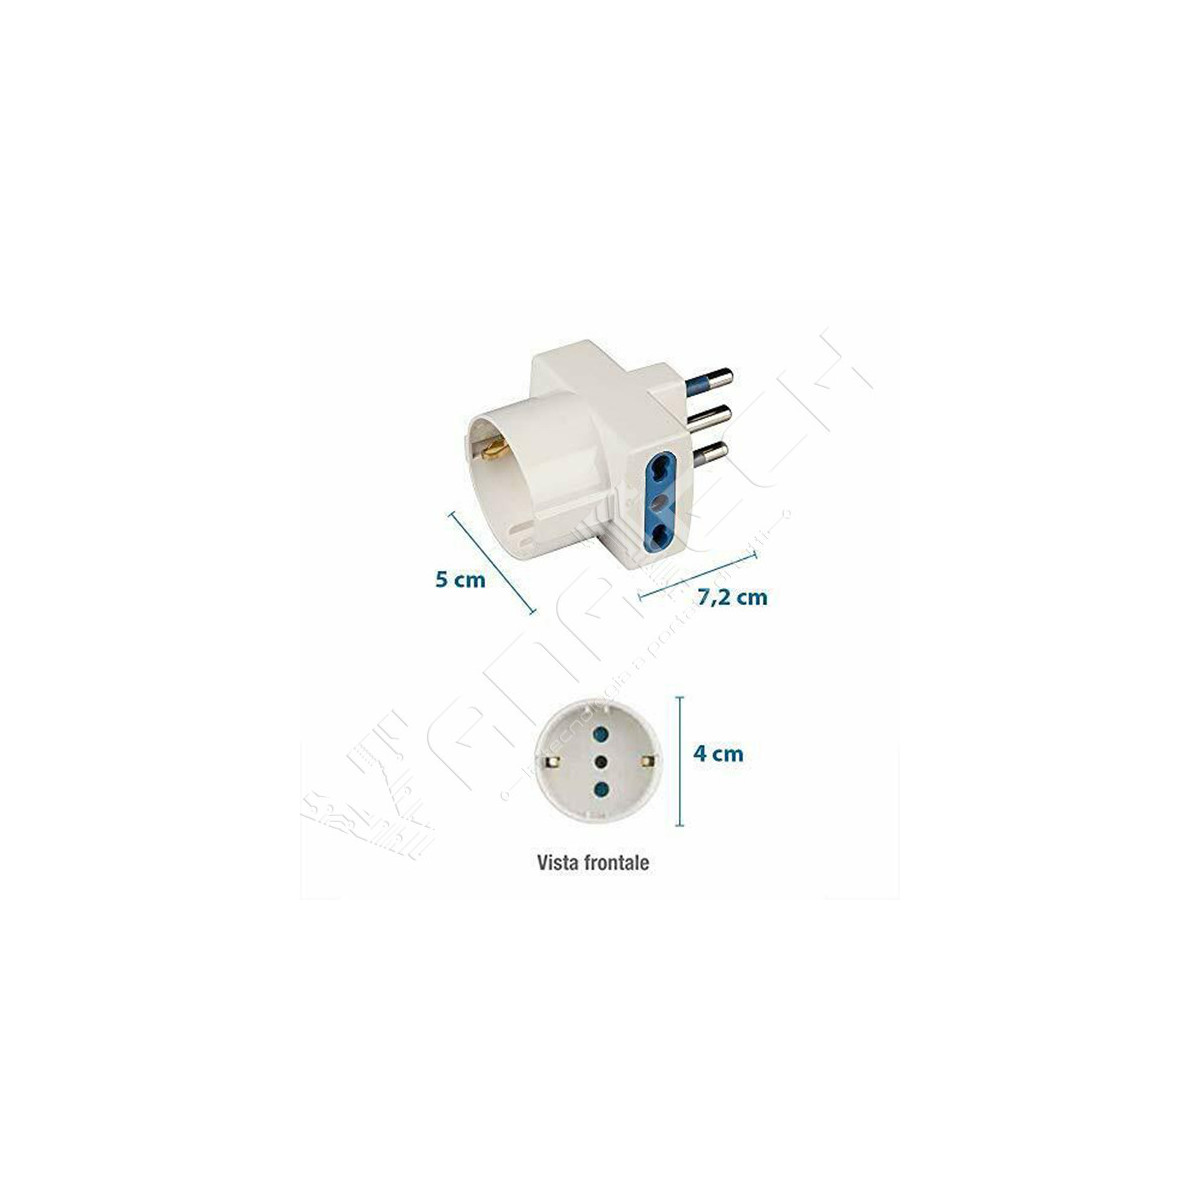 PC 027 PC DESKTOP COMPLETO INTEL I5-6400 16GB RAM 1TB HARD DISK